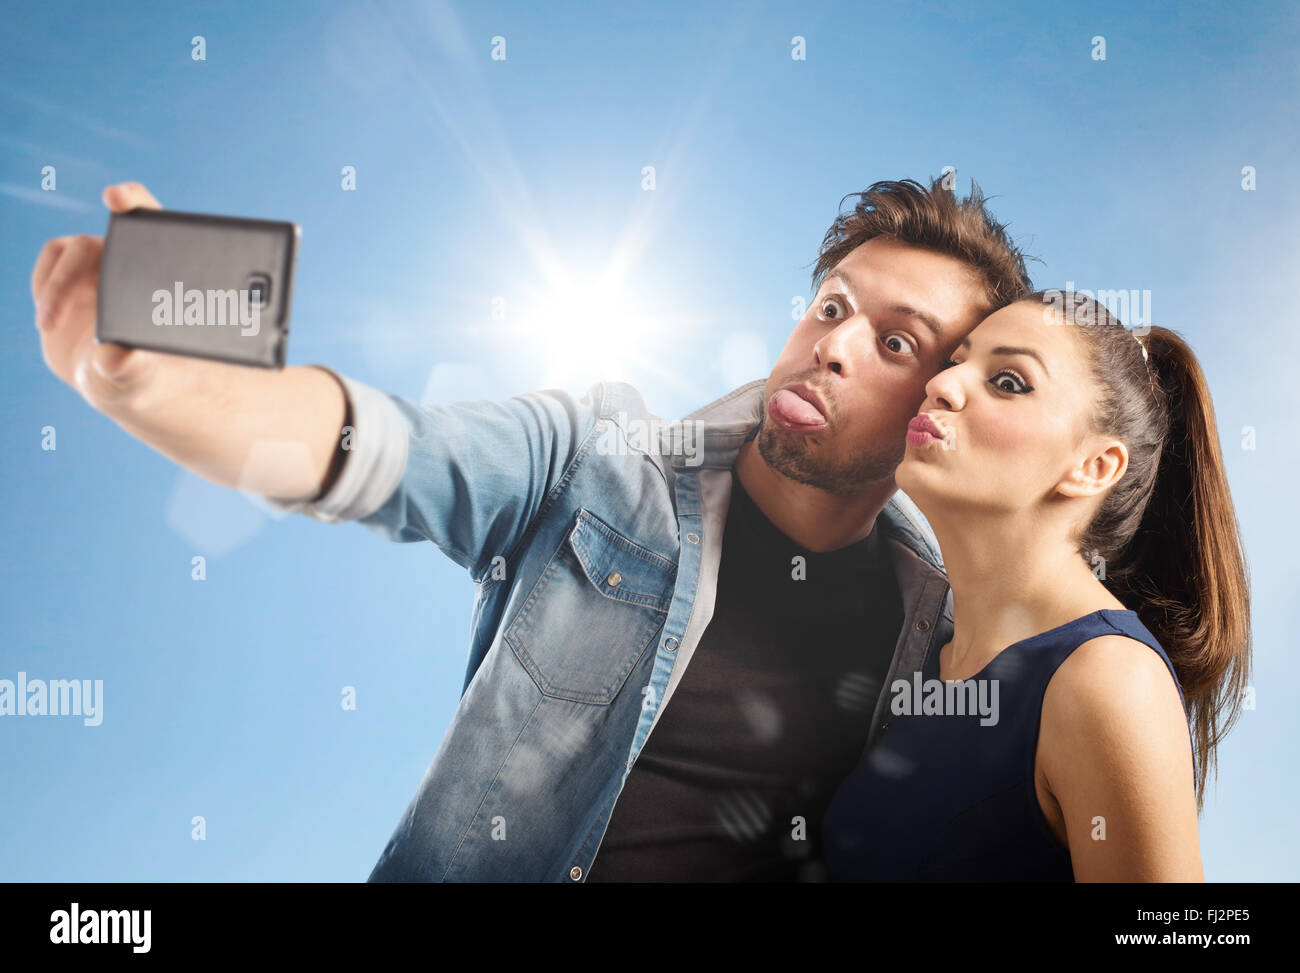 Selfie couple - Stock Image